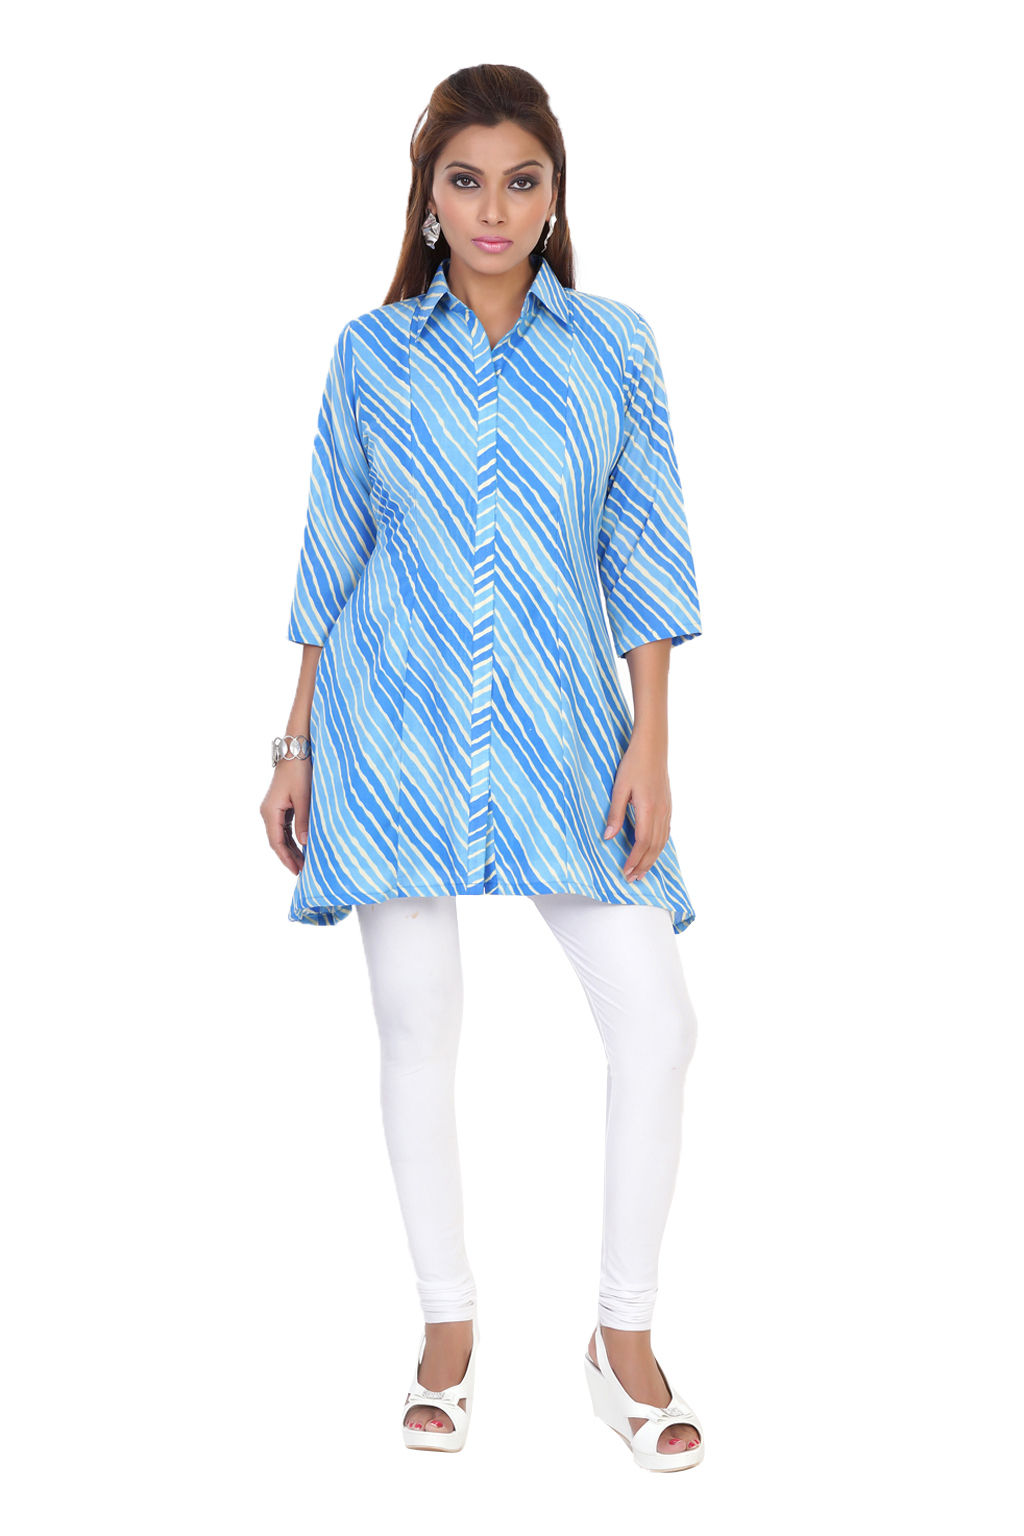 Tunic in light and dark blues